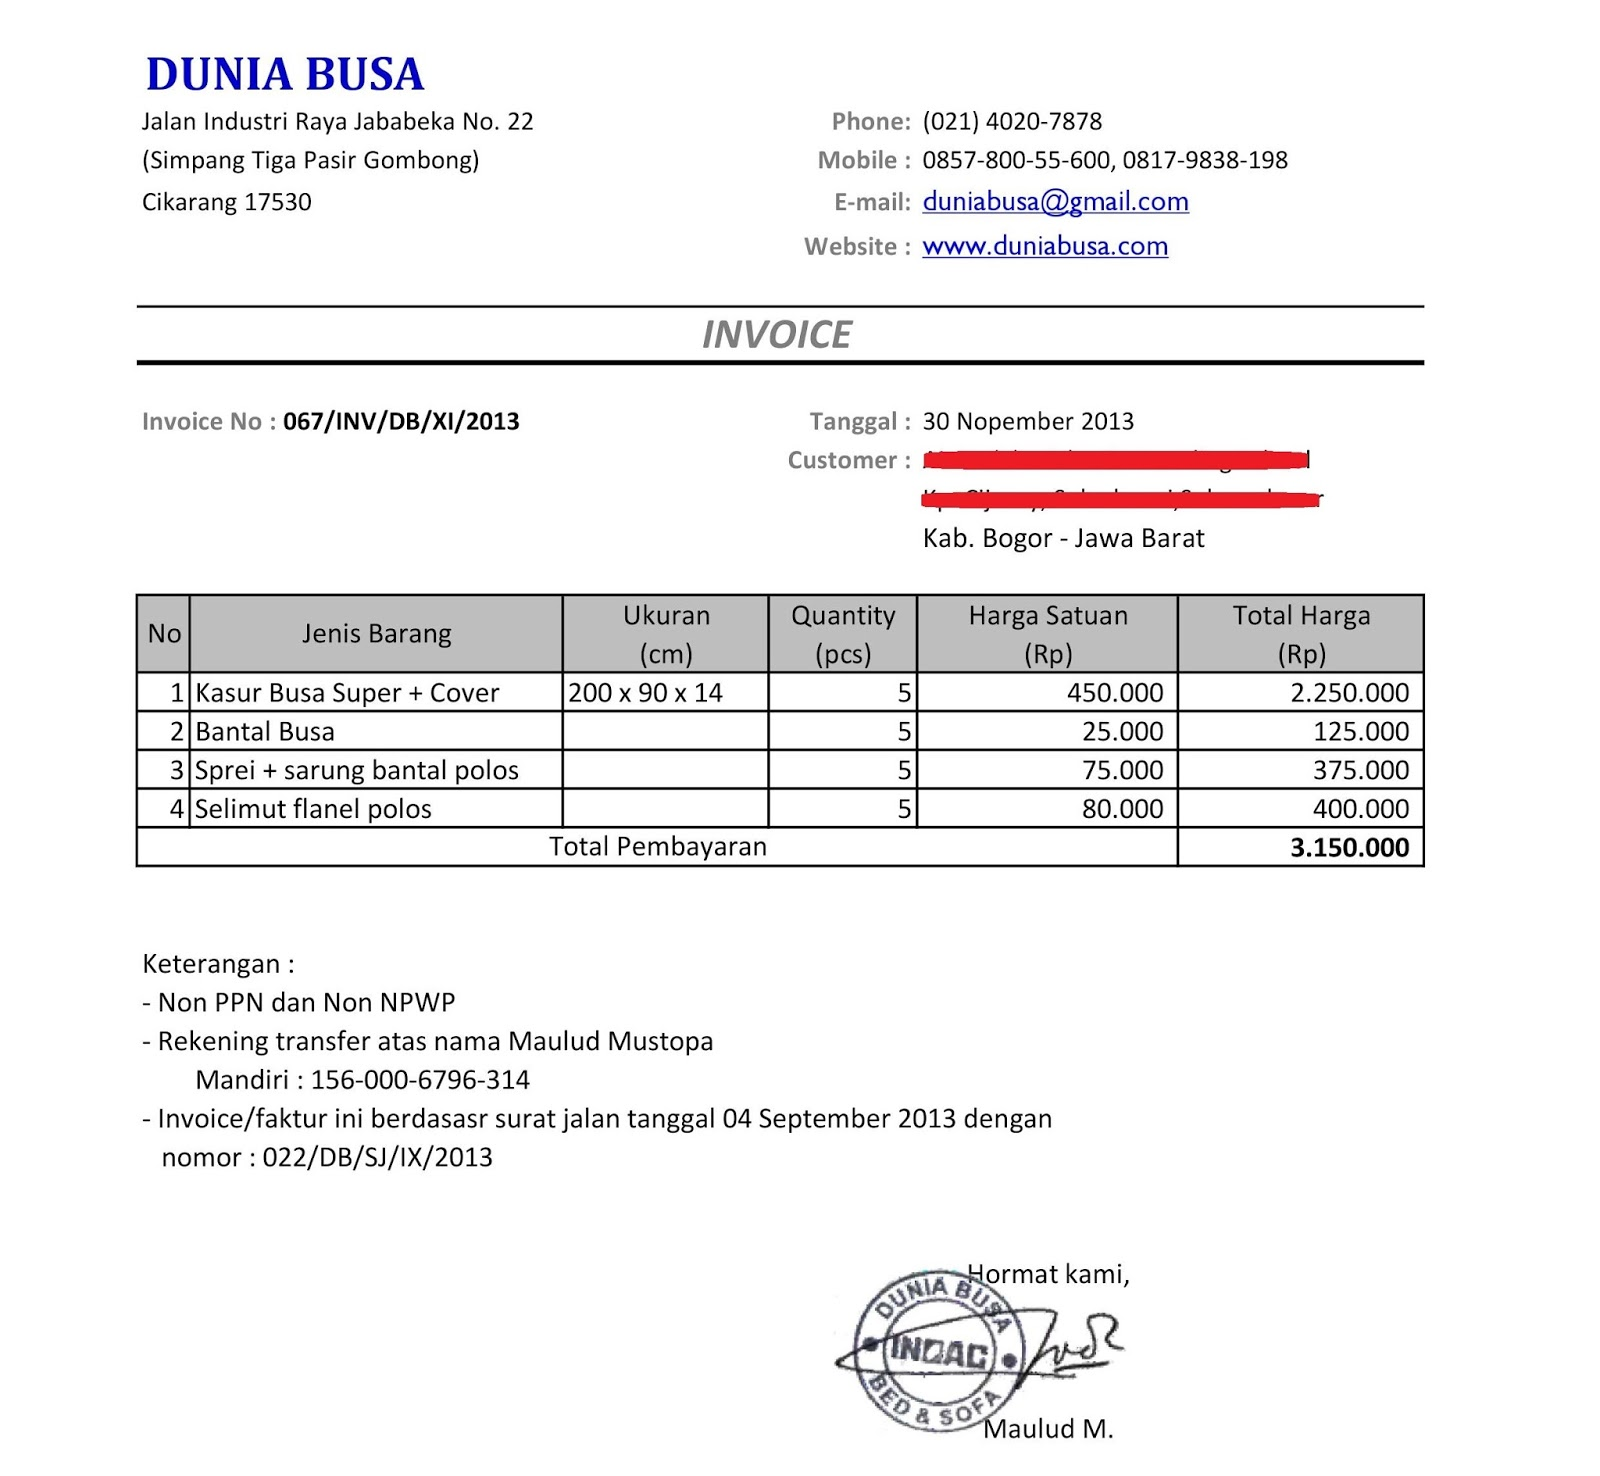 Barneybonesus  Unusual Free Invoice Online  Create Invoice Online  Invoice Template  With Marvelous Contoh Format Invoice Atau Surat Tagihan  Brankas Arsip  Free Invoice Online With Easy On The Eye Sample Invoice Cover Letter Also Invoice Template Microsoft Word  In Addition Invoice Jobs And Window Cleaning Invoice As Well As Cloud Invoice Additionally Quickbooks Export Invoices From Sklepco With Barneybonesus  Marvelous Free Invoice Online  Create Invoice Online  Invoice Template  With Easy On The Eye Contoh Format Invoice Atau Surat Tagihan  Brankas Arsip  Free Invoice Online And Unusual Sample Invoice Cover Letter Also Invoice Template Microsoft Word  In Addition Invoice Jobs From Sklepco